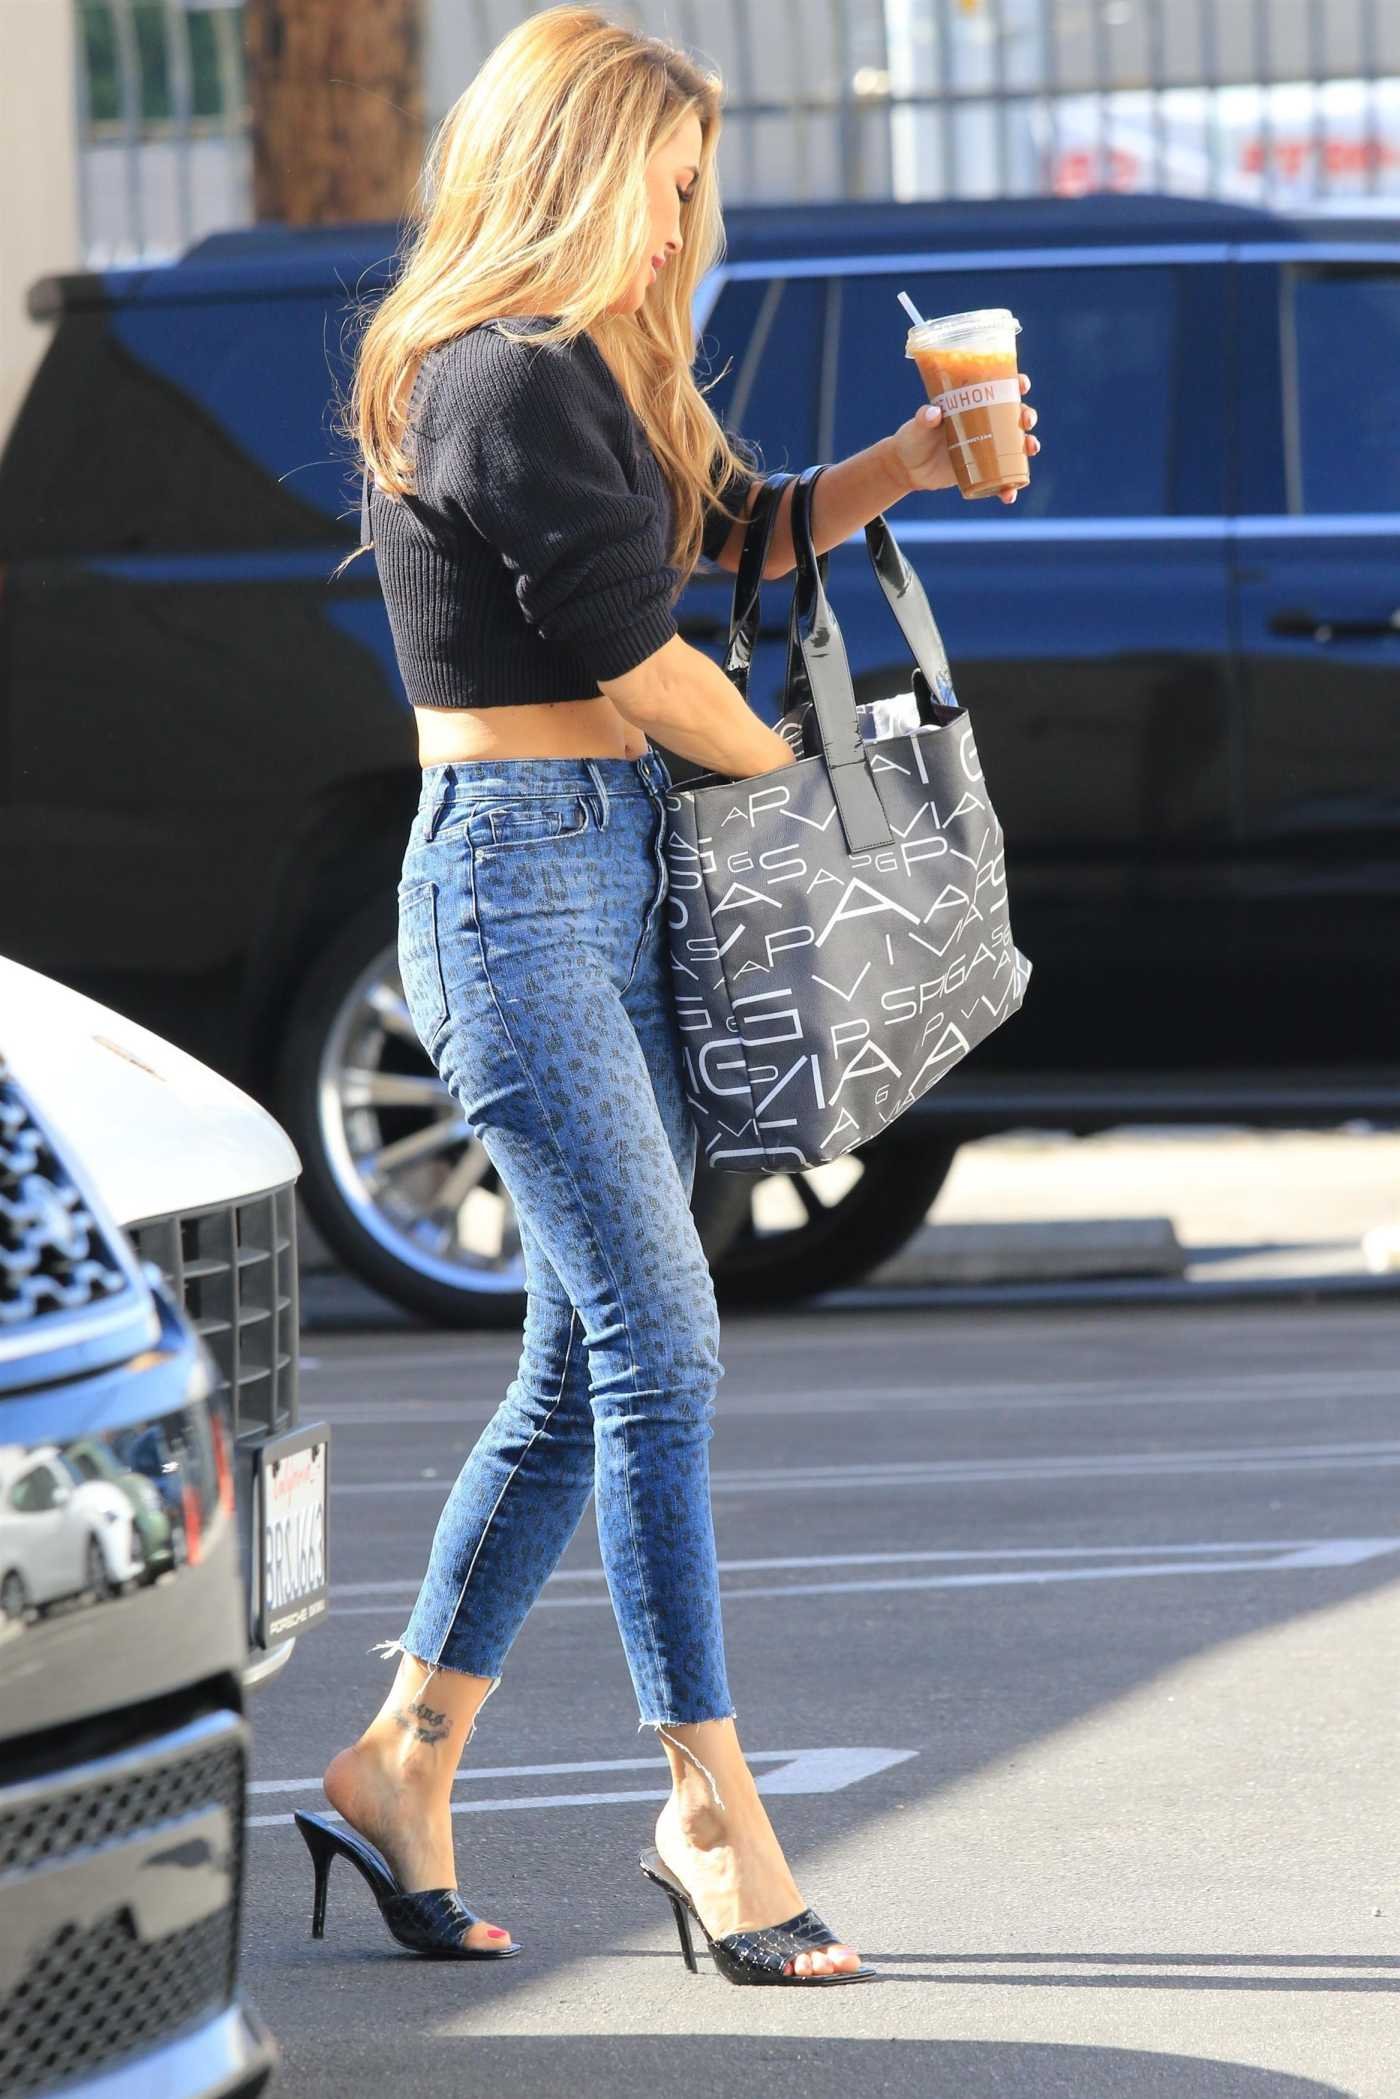 Chrishell Stause in a Blue Animal Print Jeans Arrives at the DWTS Studio in Los Angeles 10/30/2020